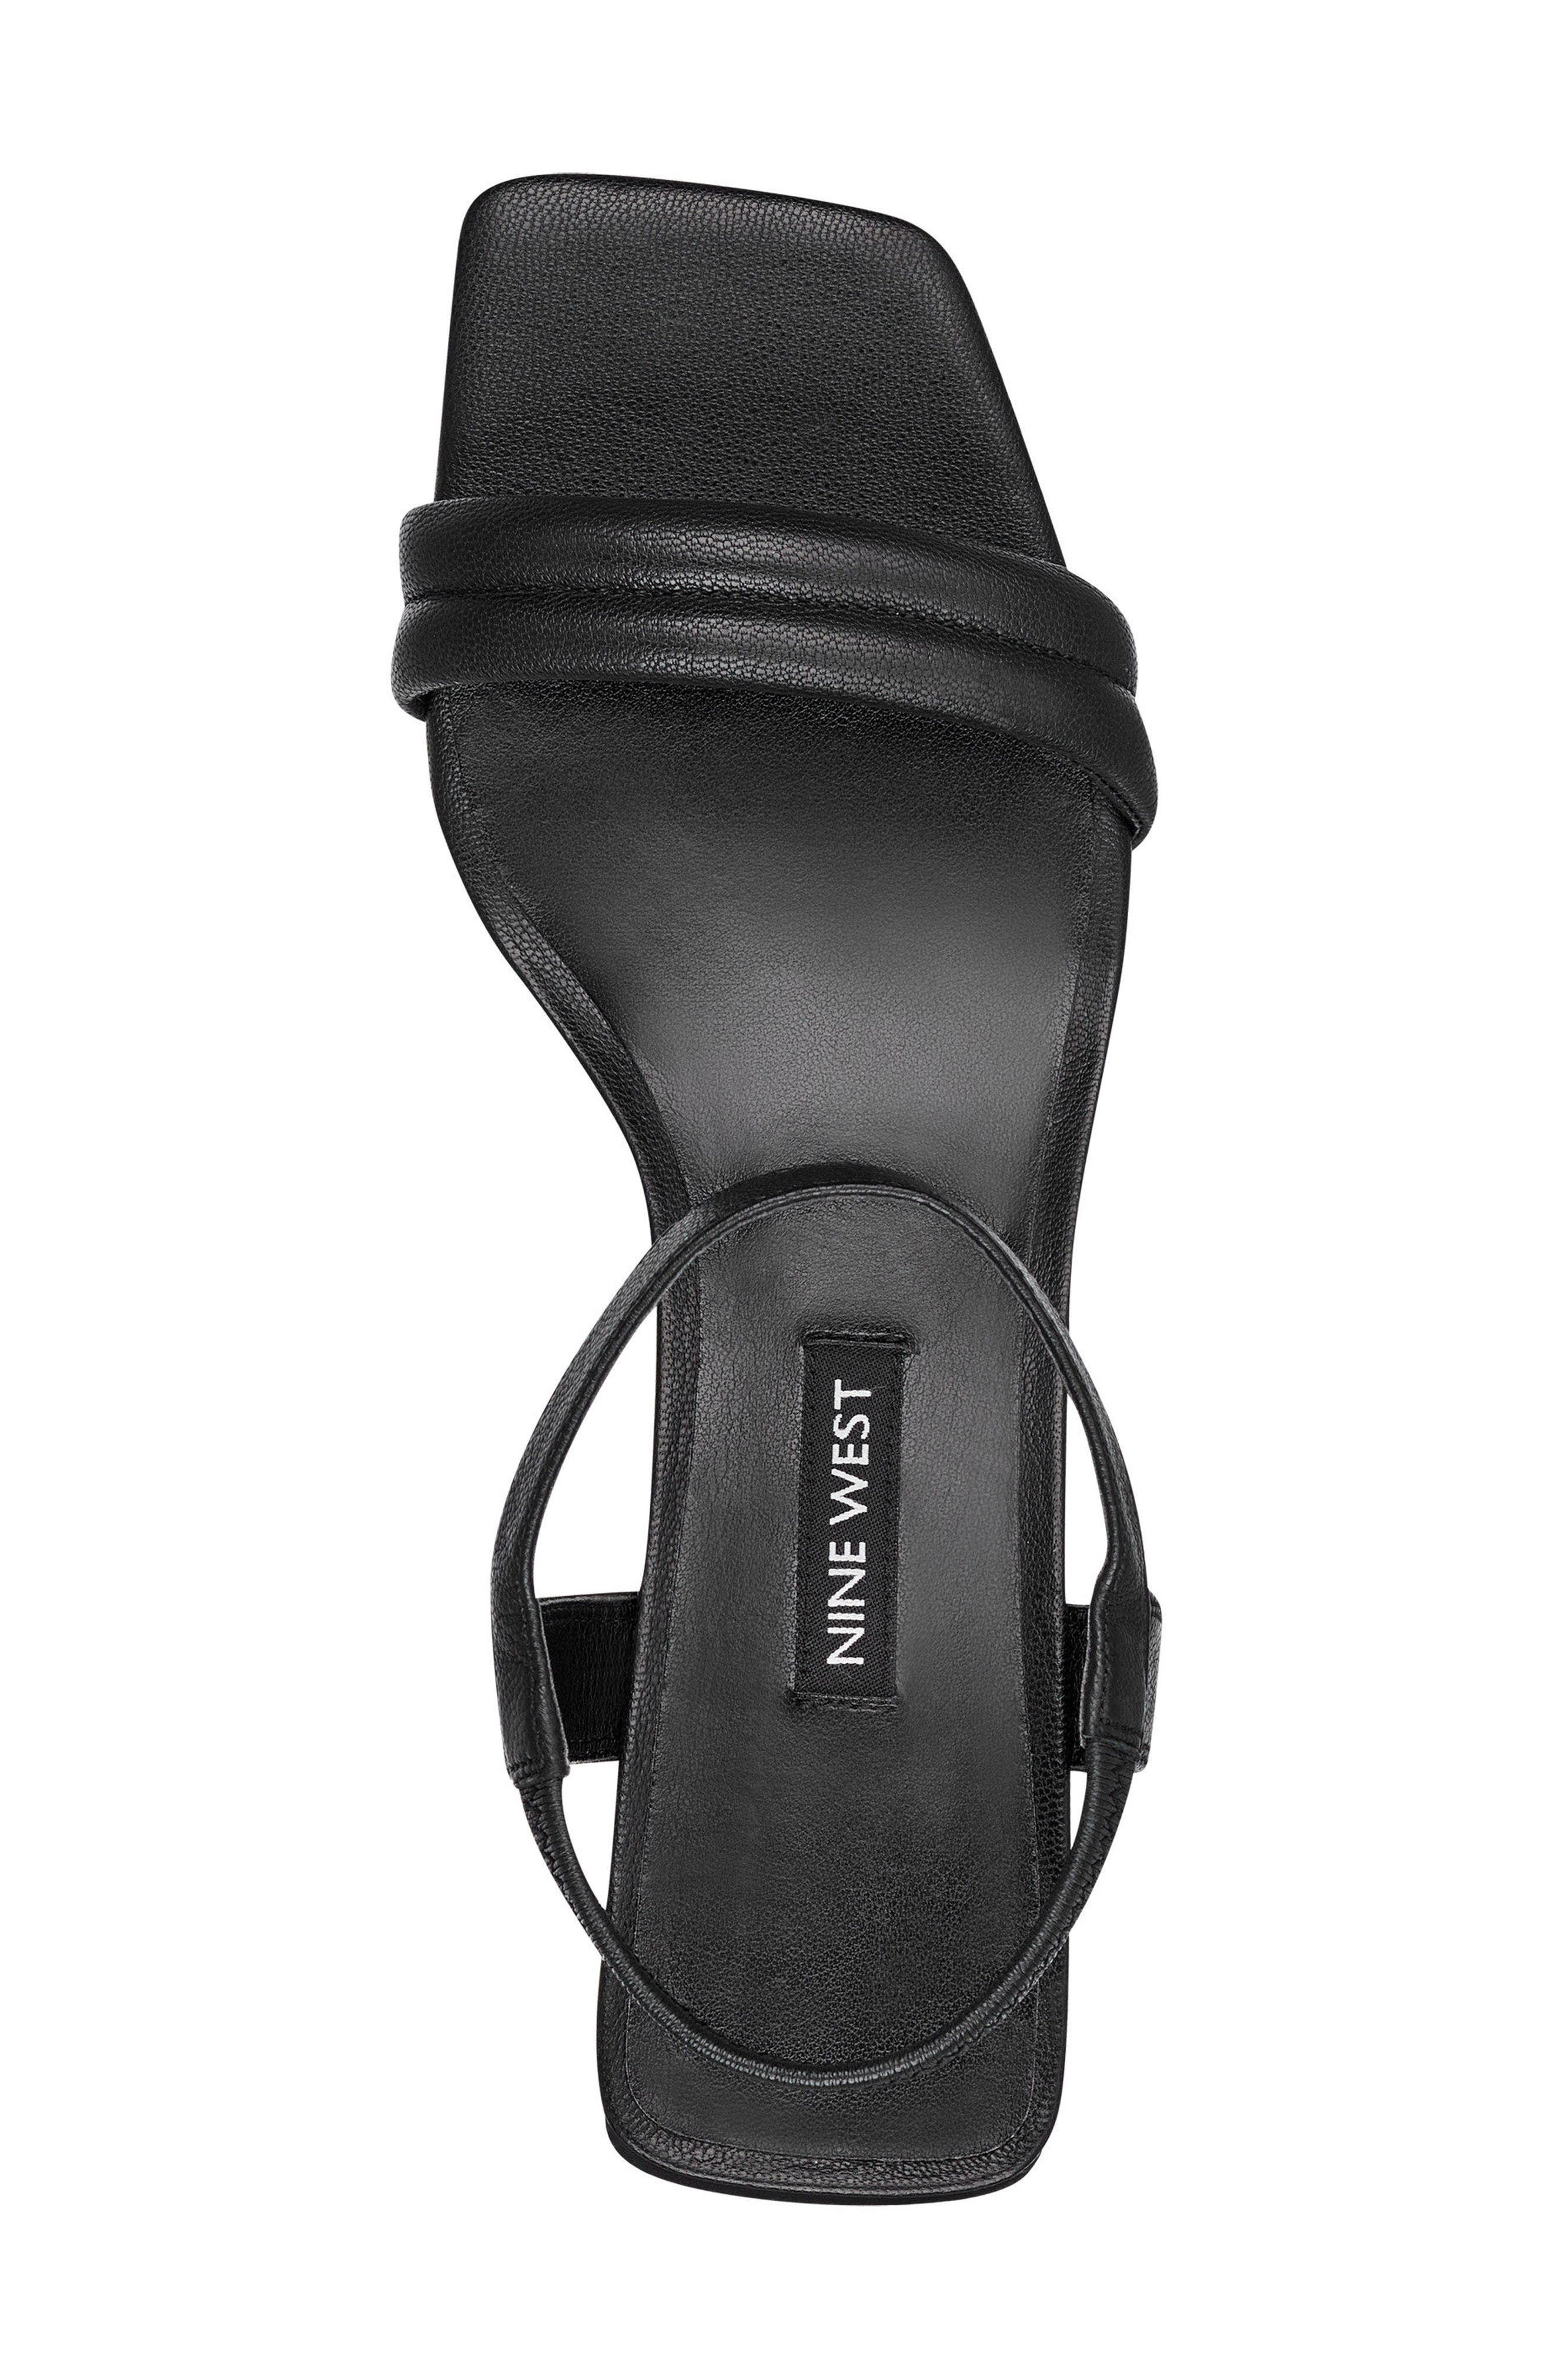 Urgreat Ankle Strap Sandal,                             Alternate thumbnail 5, color,                             BLACK LEATHER